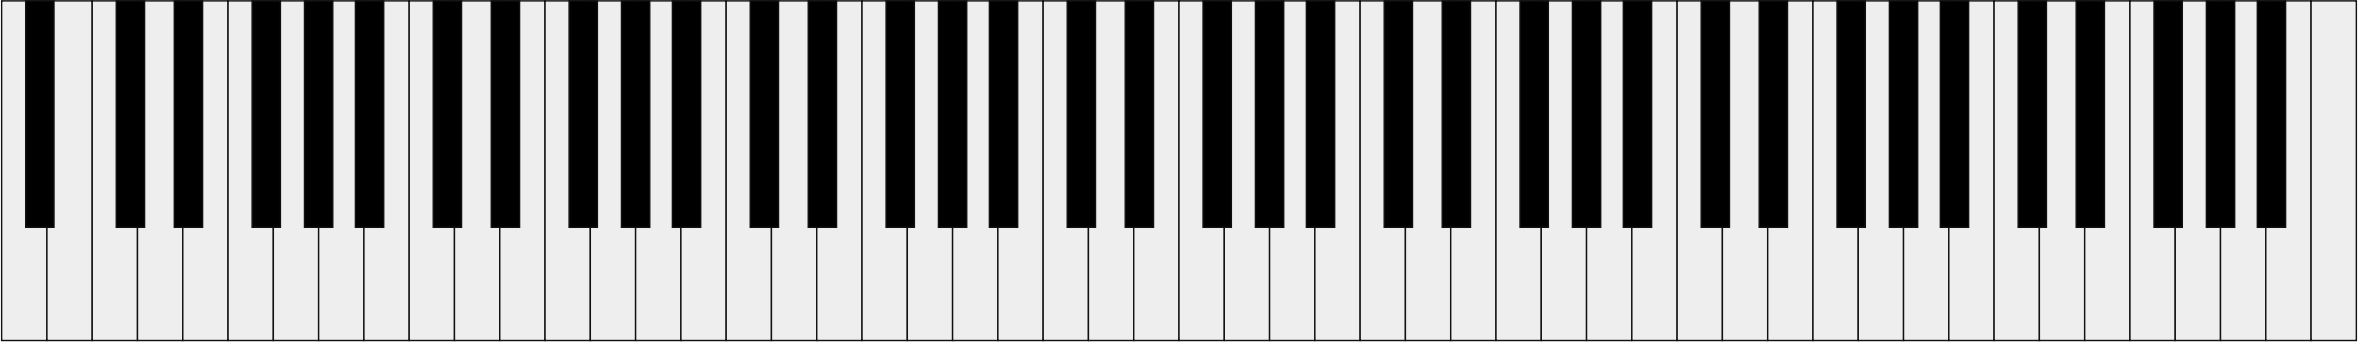 Piano keys png. The keyboard of a